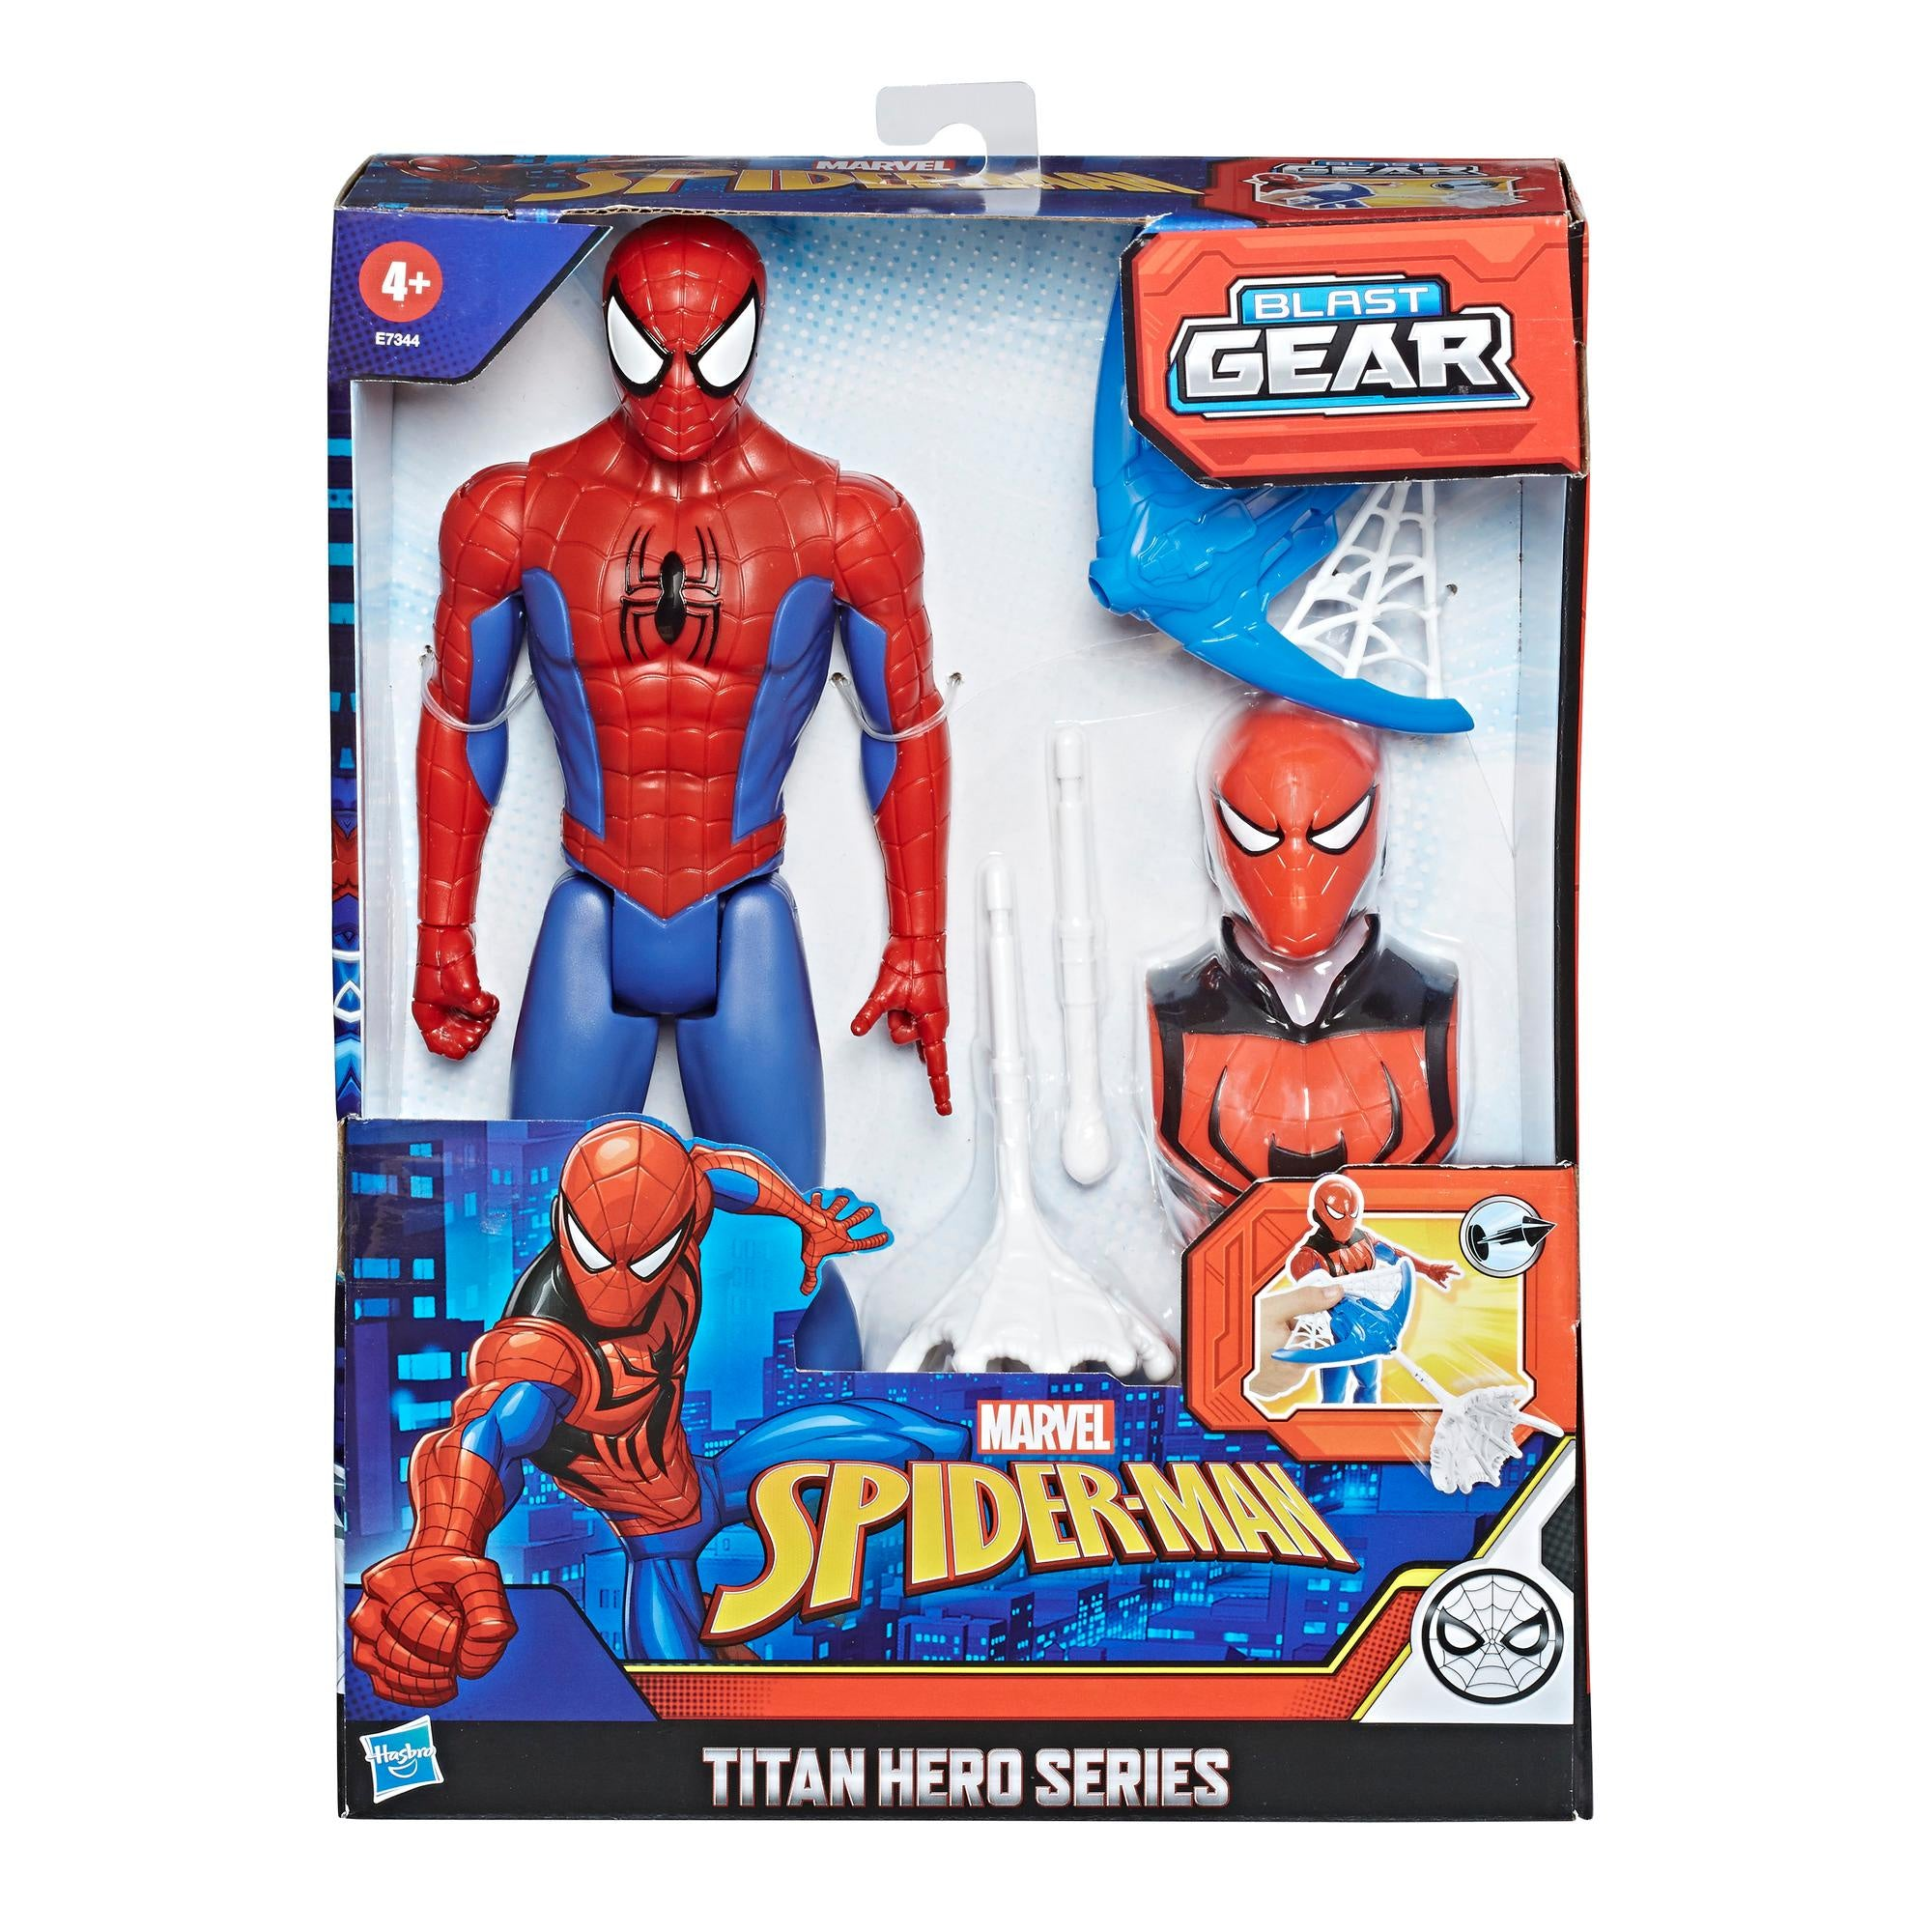 Spiderman Titan Hero Innovation Blast Gear Spiderman by venntov